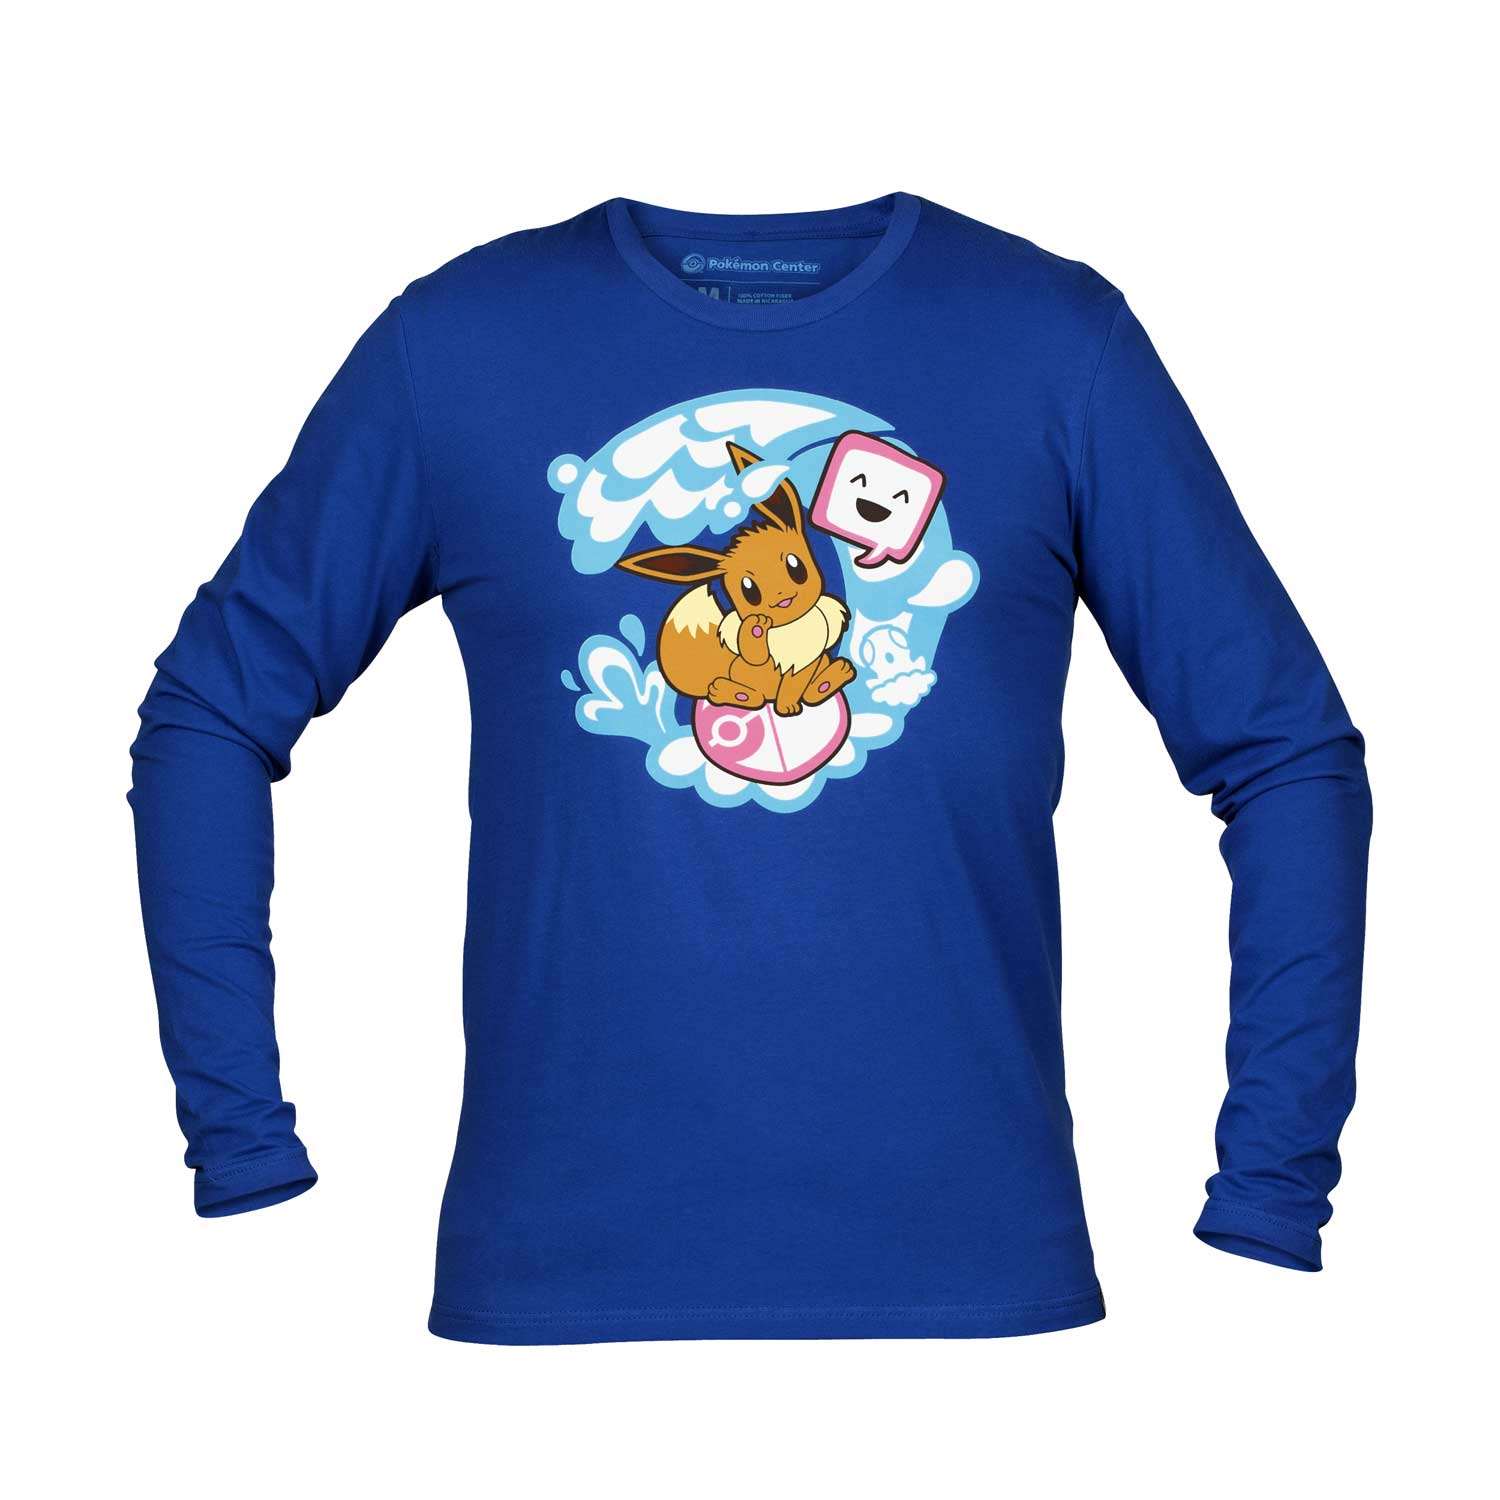 2071ca47 Image for Exploring with Eevee Fitted Long-Sleeve T-Shirt - Adult from  Pokemon